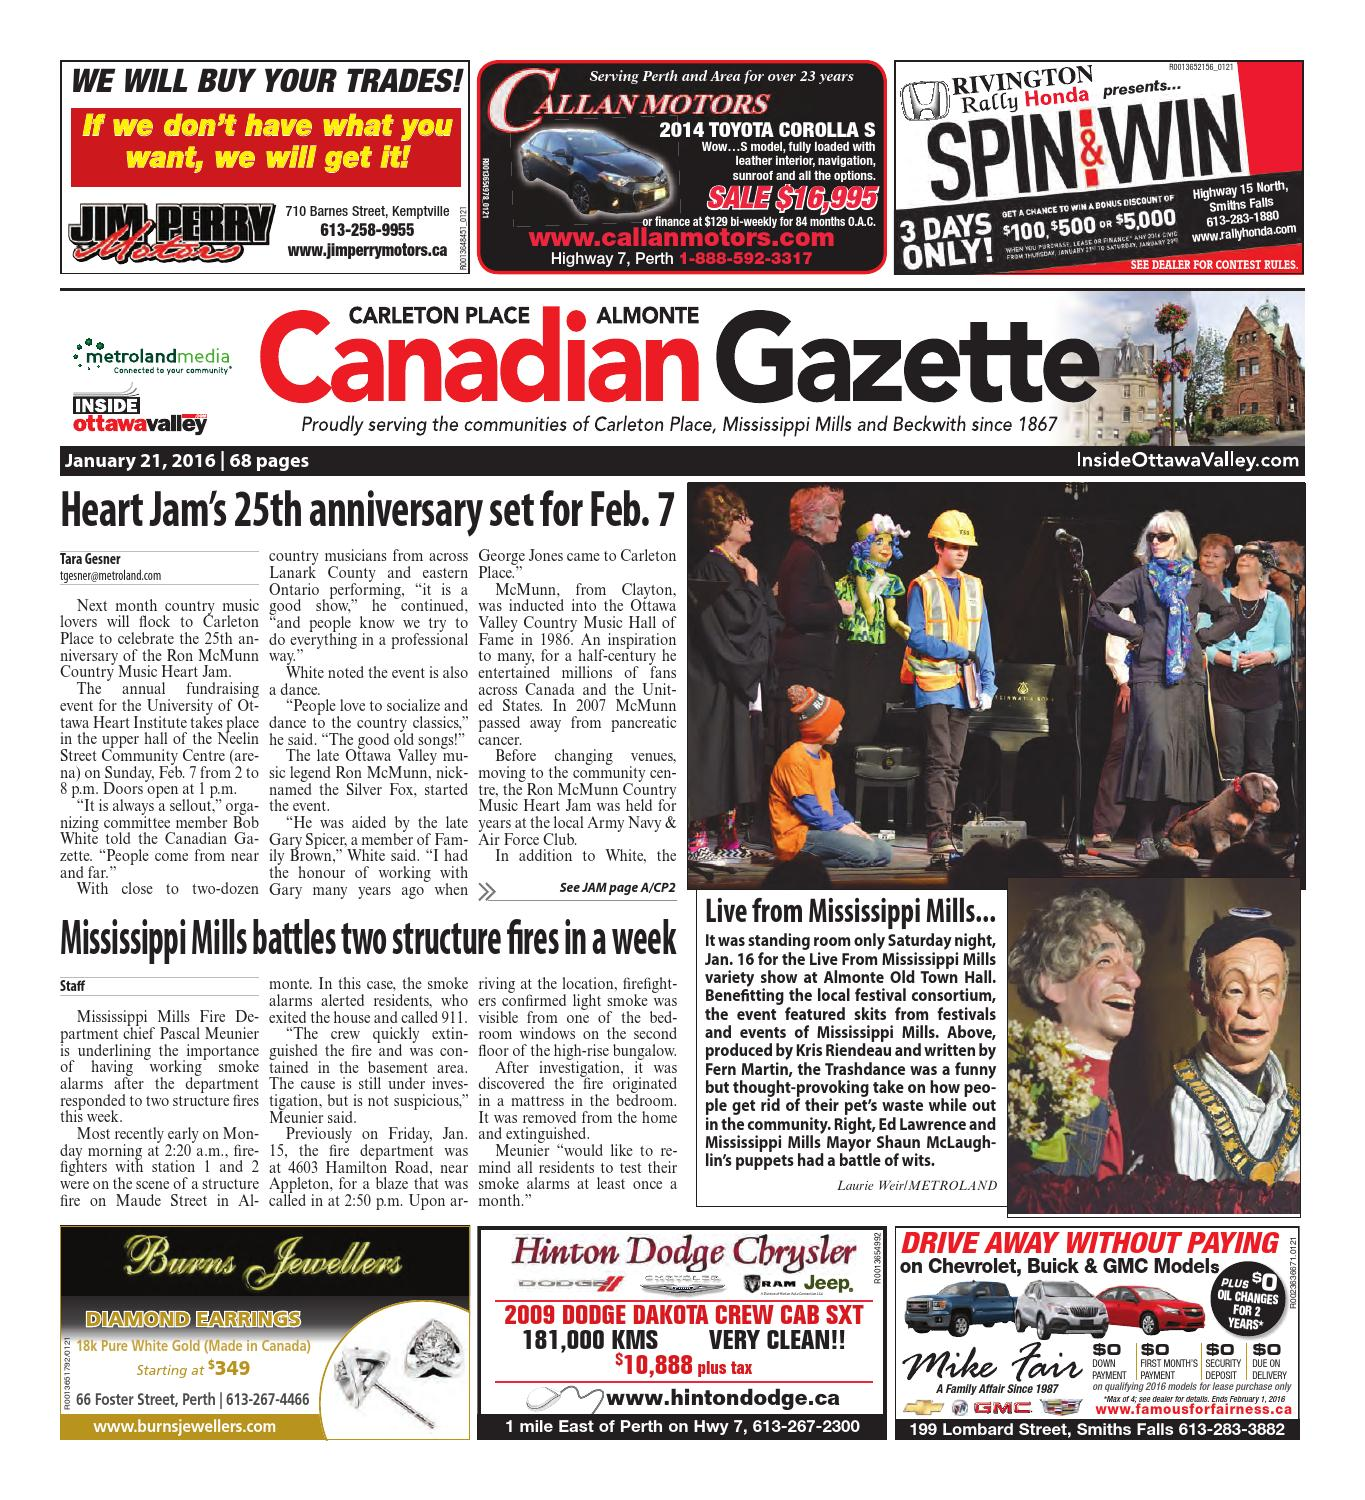 Almontecarletonplace012116 by metroland east almonte carleton almontecarletonplace012116 by metroland east almonte carleton place canadian gazette issuu fandeluxe Image collections